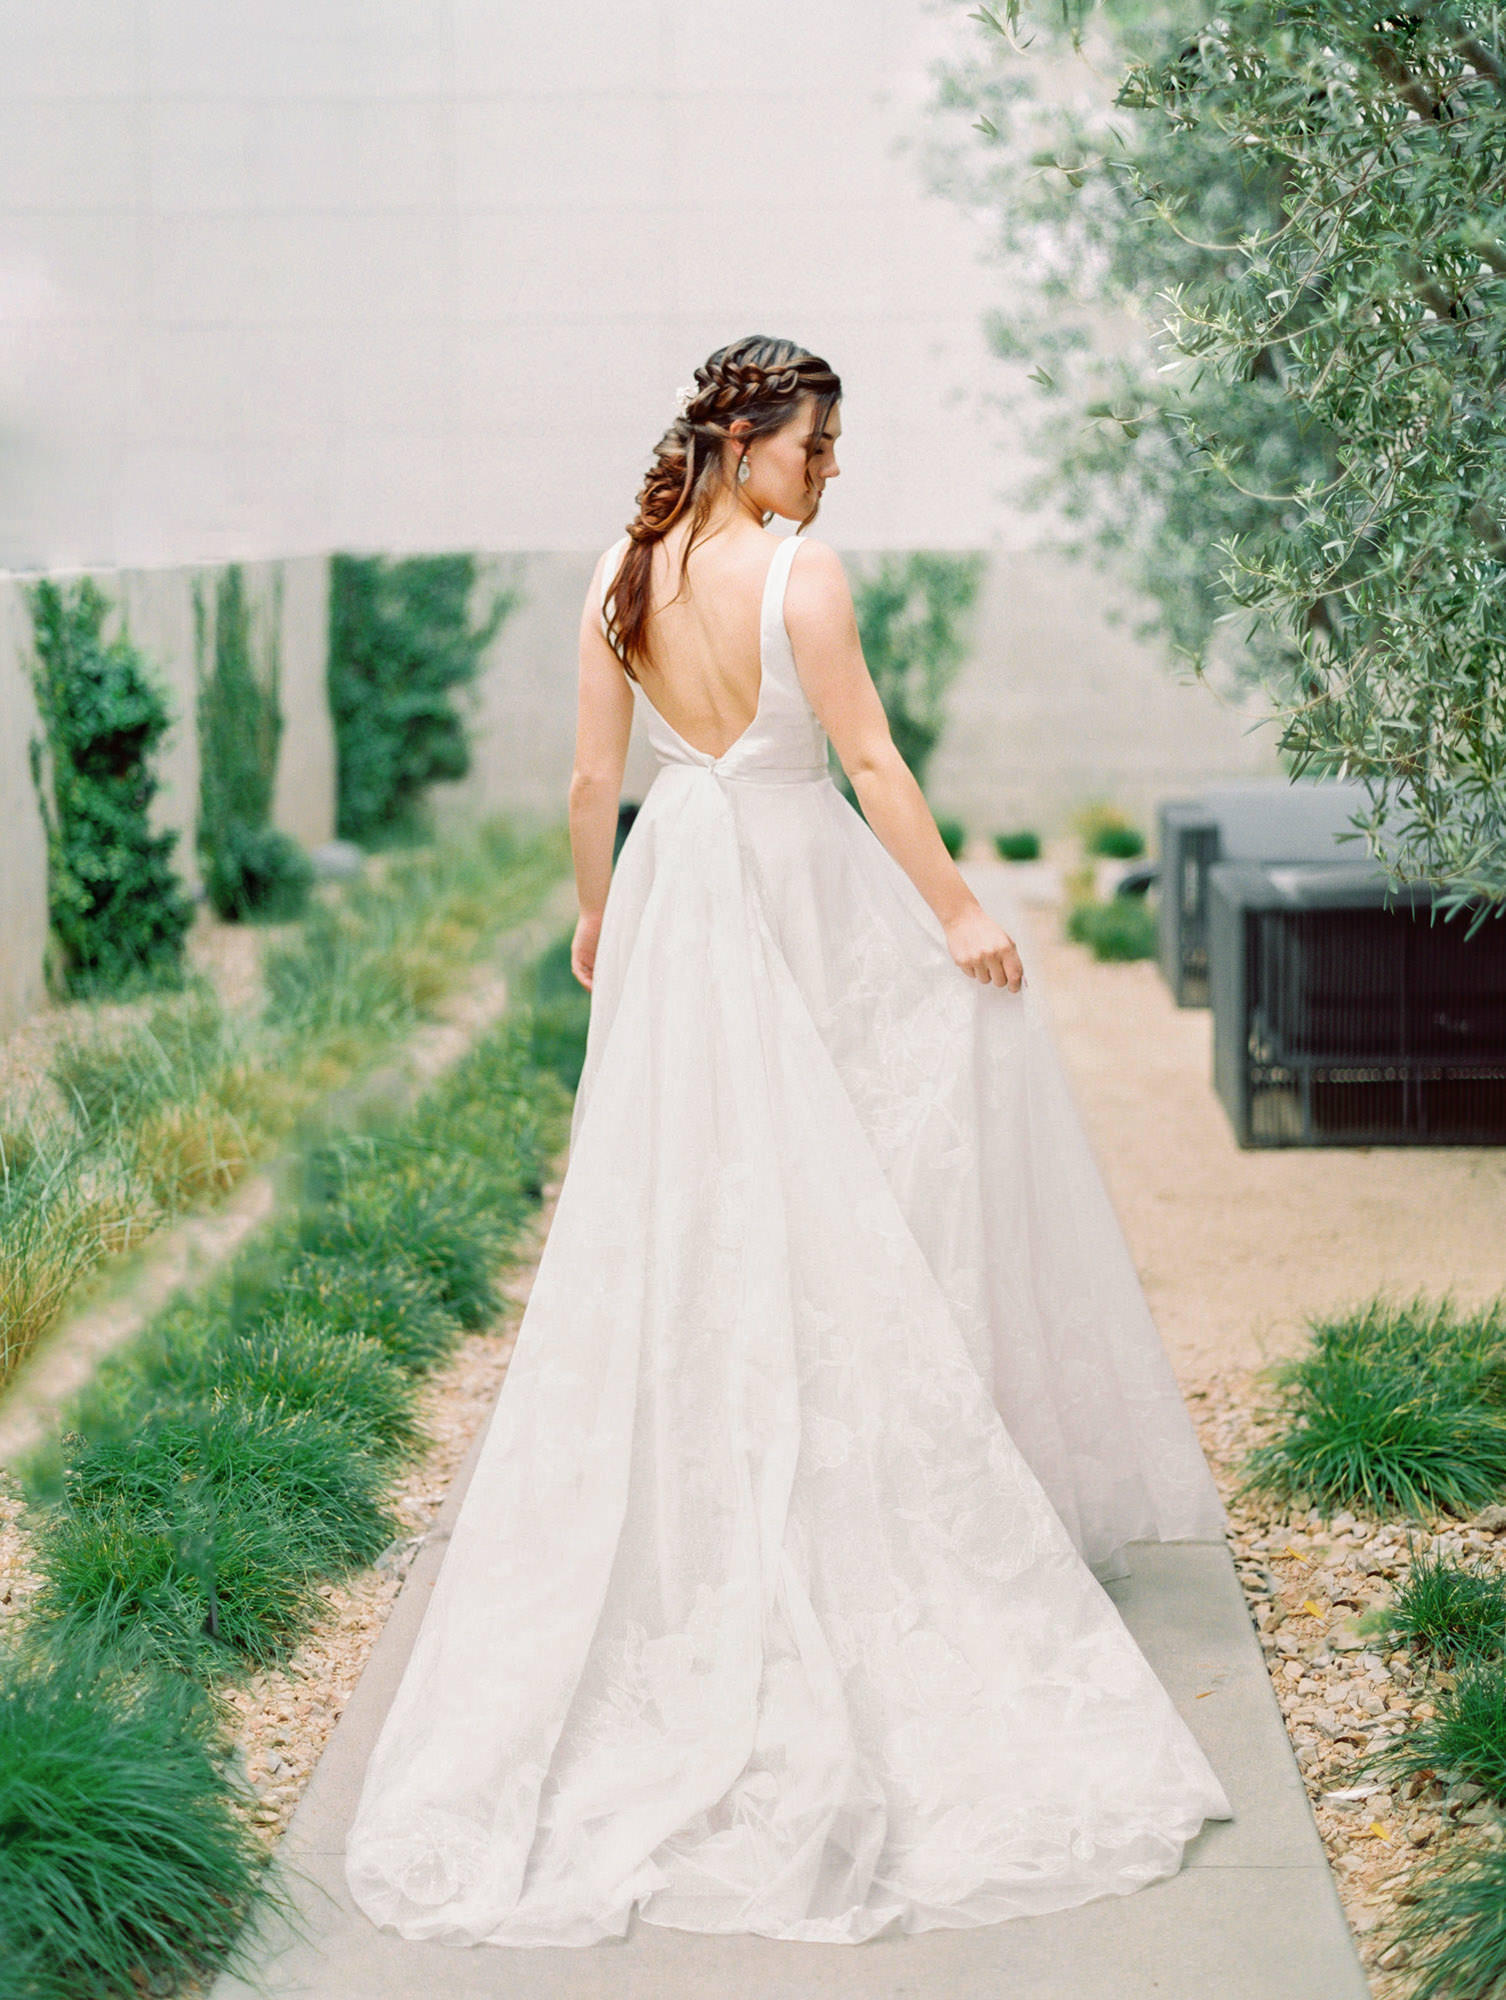 Sleeveless scoop neck with ivory ribbon around waist and floral pattern on skirt. Bea Marchesa Notte wedding dress in San Diego by Cavin Elizabeth - San Diego film photographer